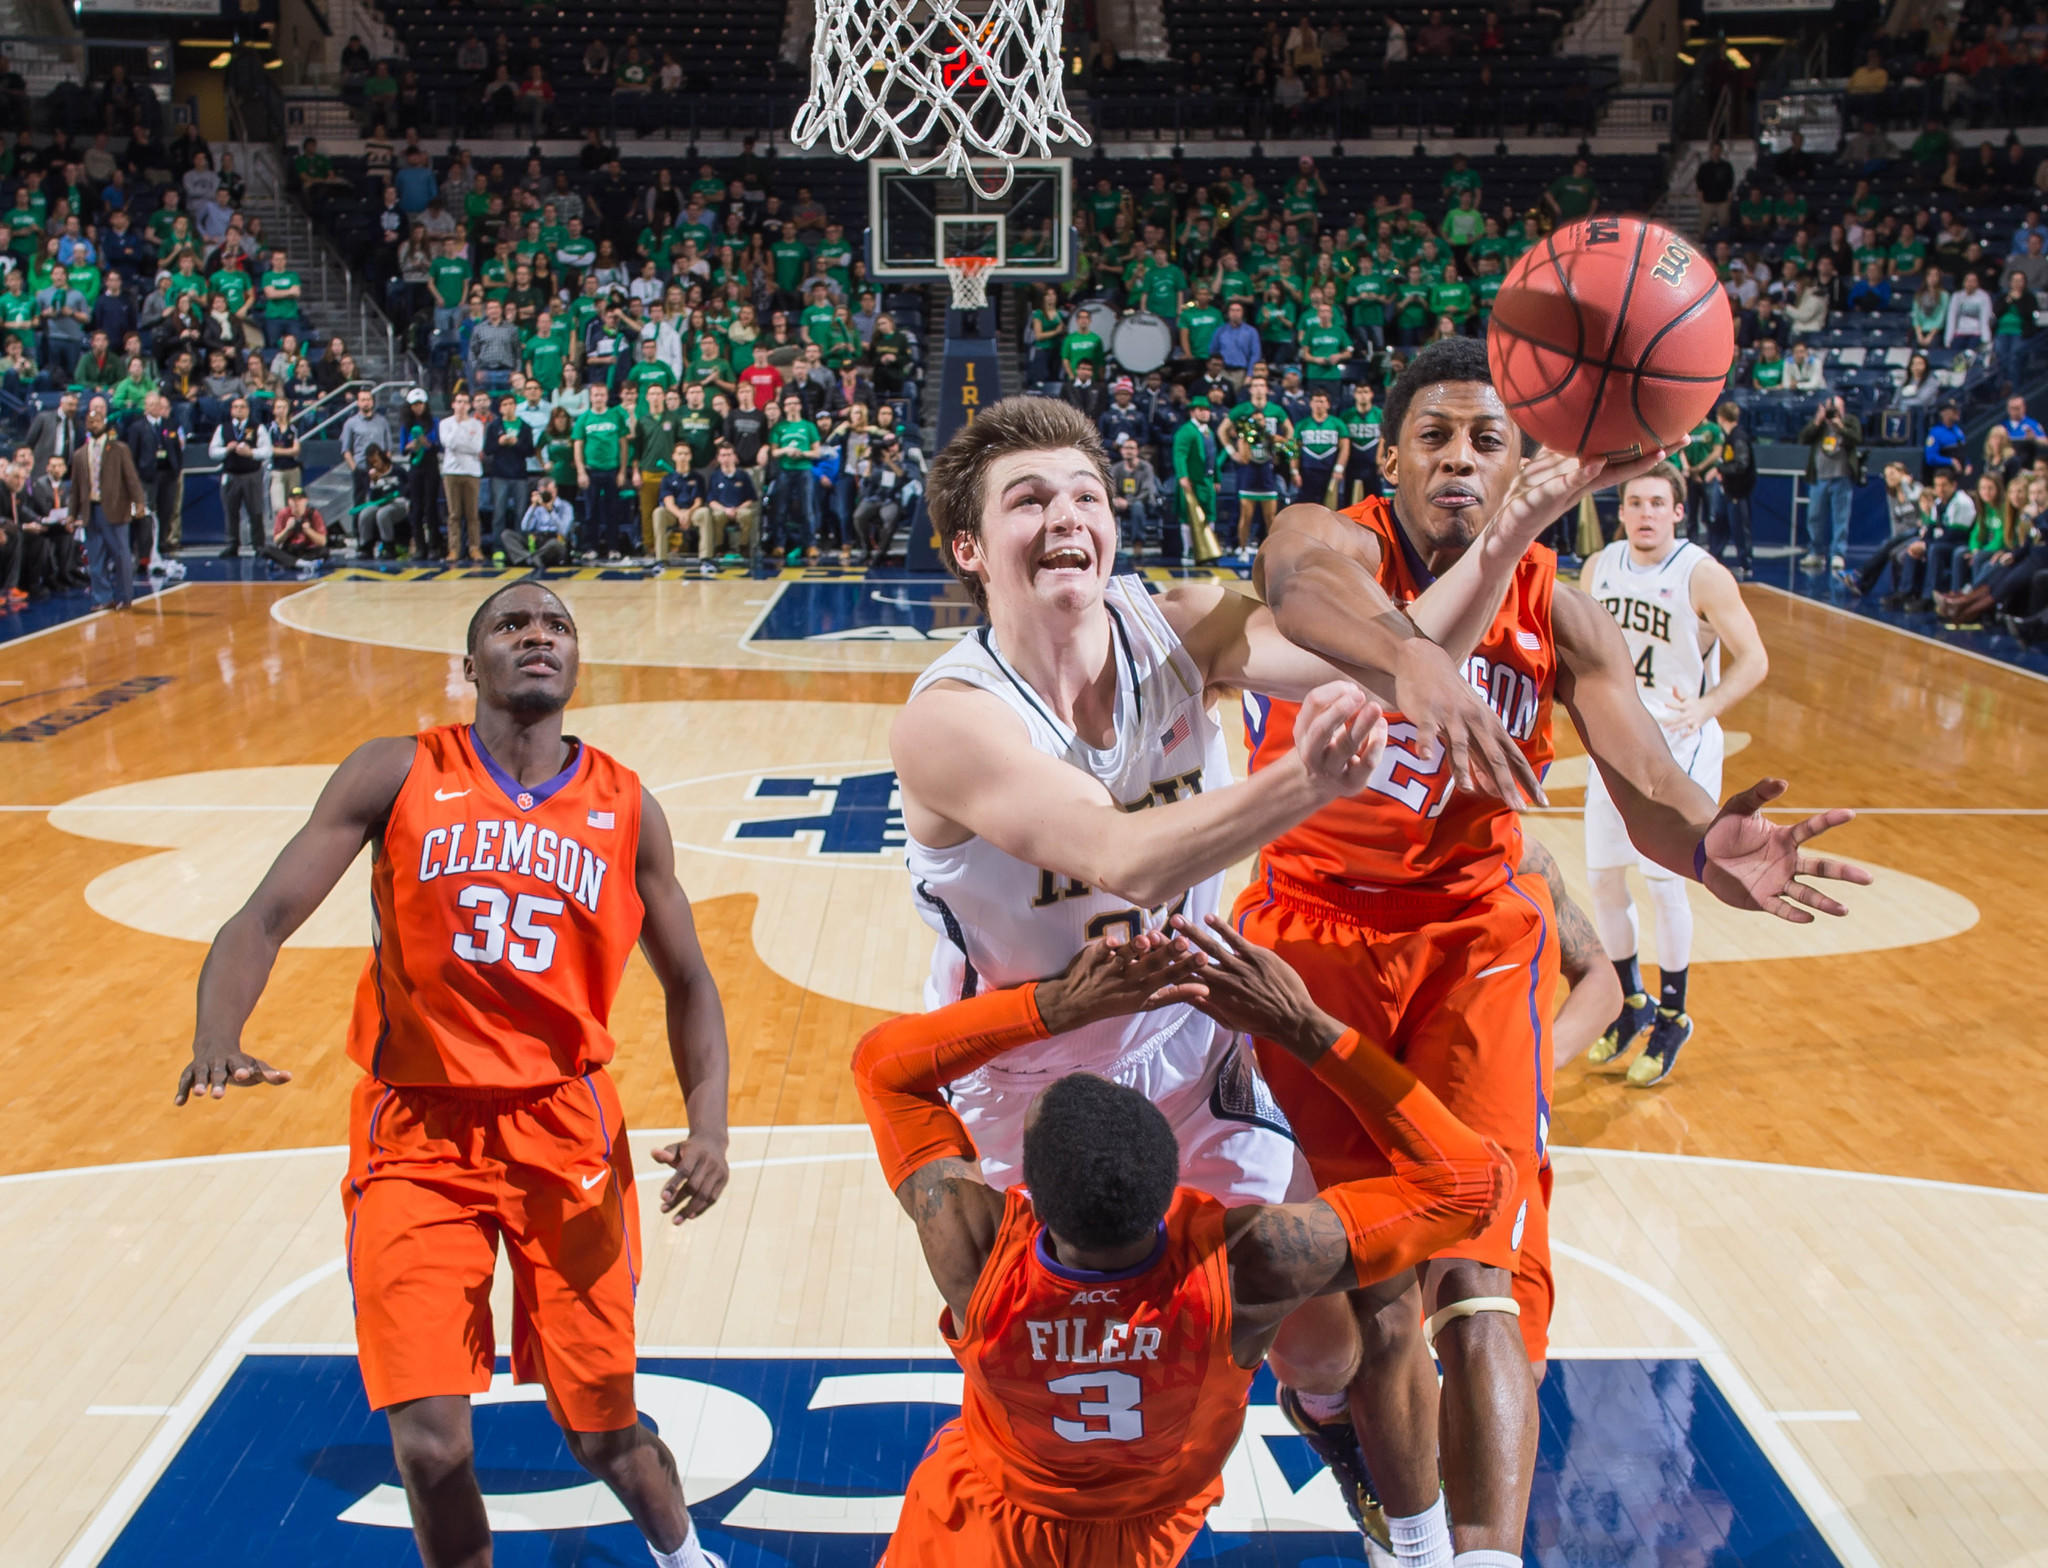 Notre Dame guard Steve Vasturia goes up for a shot as Clemson guard Adonis Filer (3) and guard Damarcus Harrison (21) defend in the first overtime.